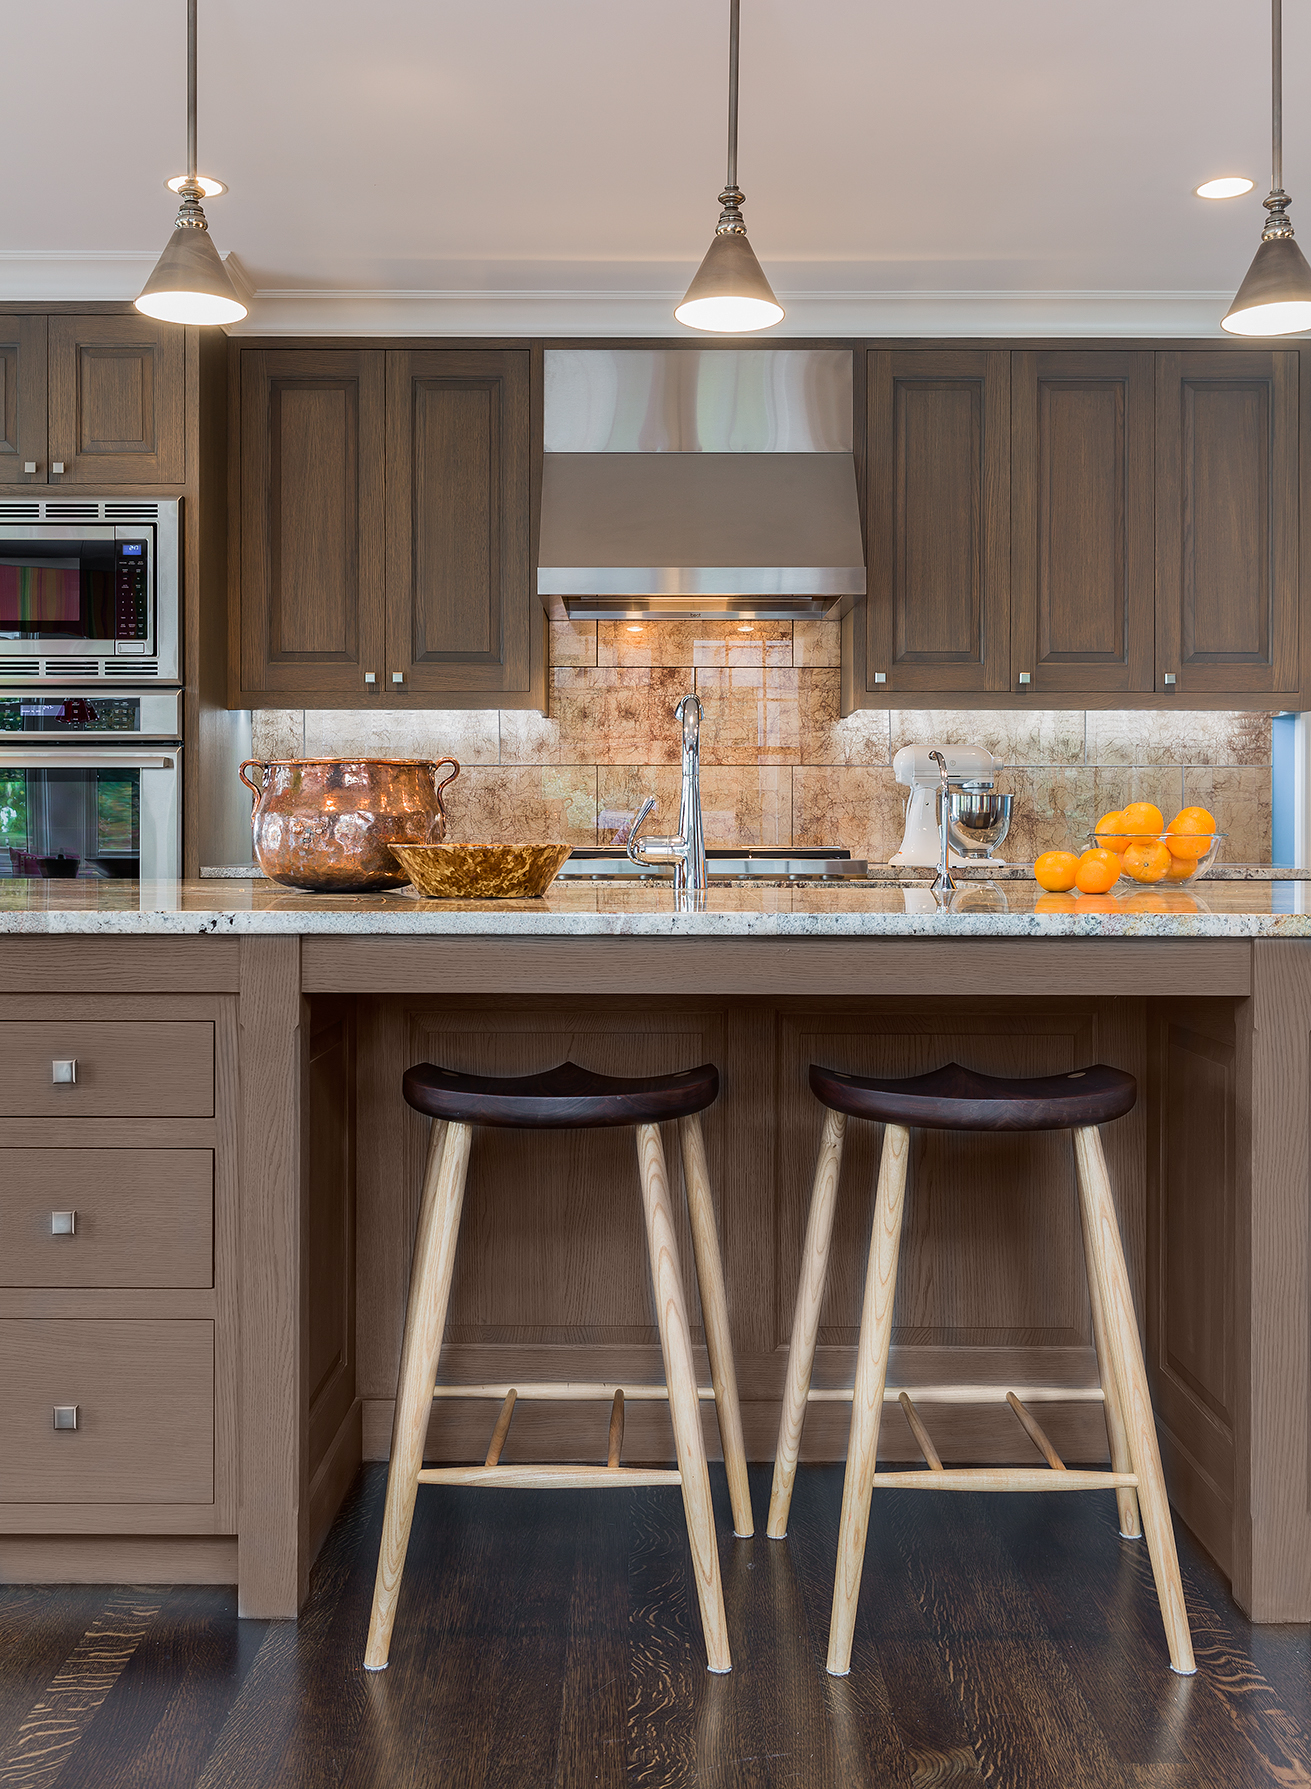 Interior design and kitchen lighting plan by Elizabeth Swartz Interiors of Boston that incorporates pendant lights over the island for task lighting.